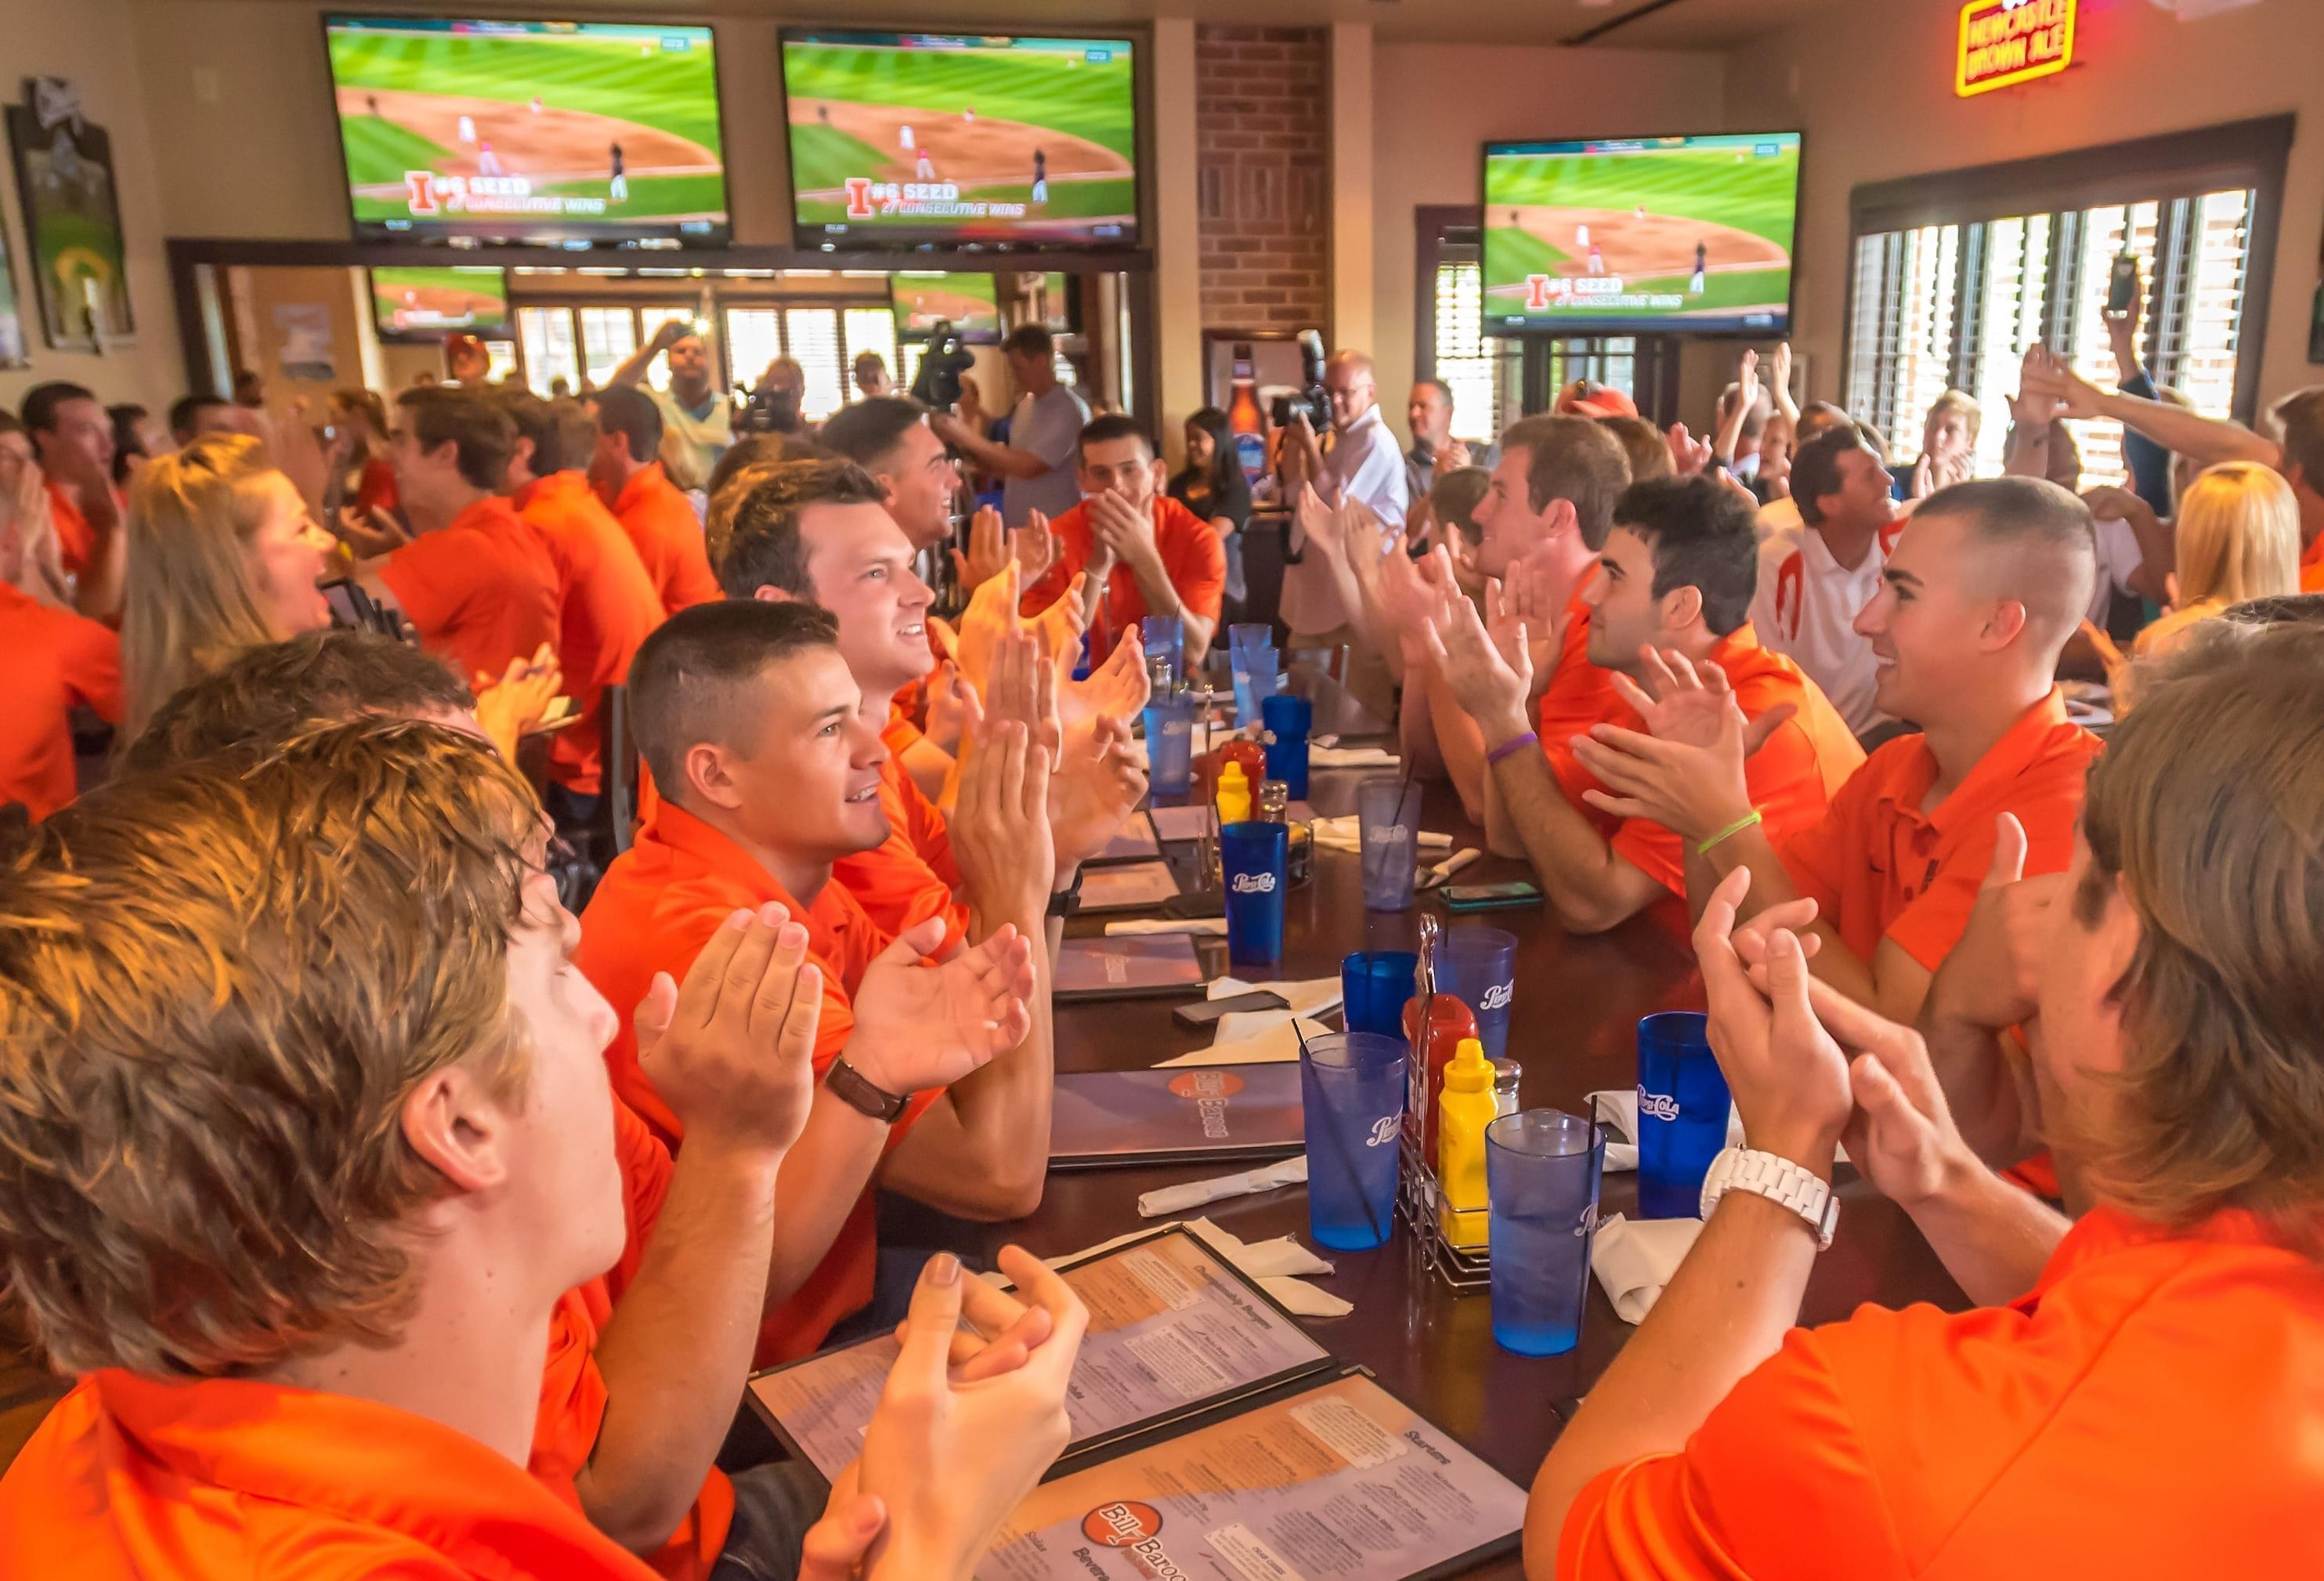 Members of the Illinois baseball team cheer as they learn about their No. 6 national seed in the NCAA Baseball Tournament at Billy Barooz in Champaign Monday.